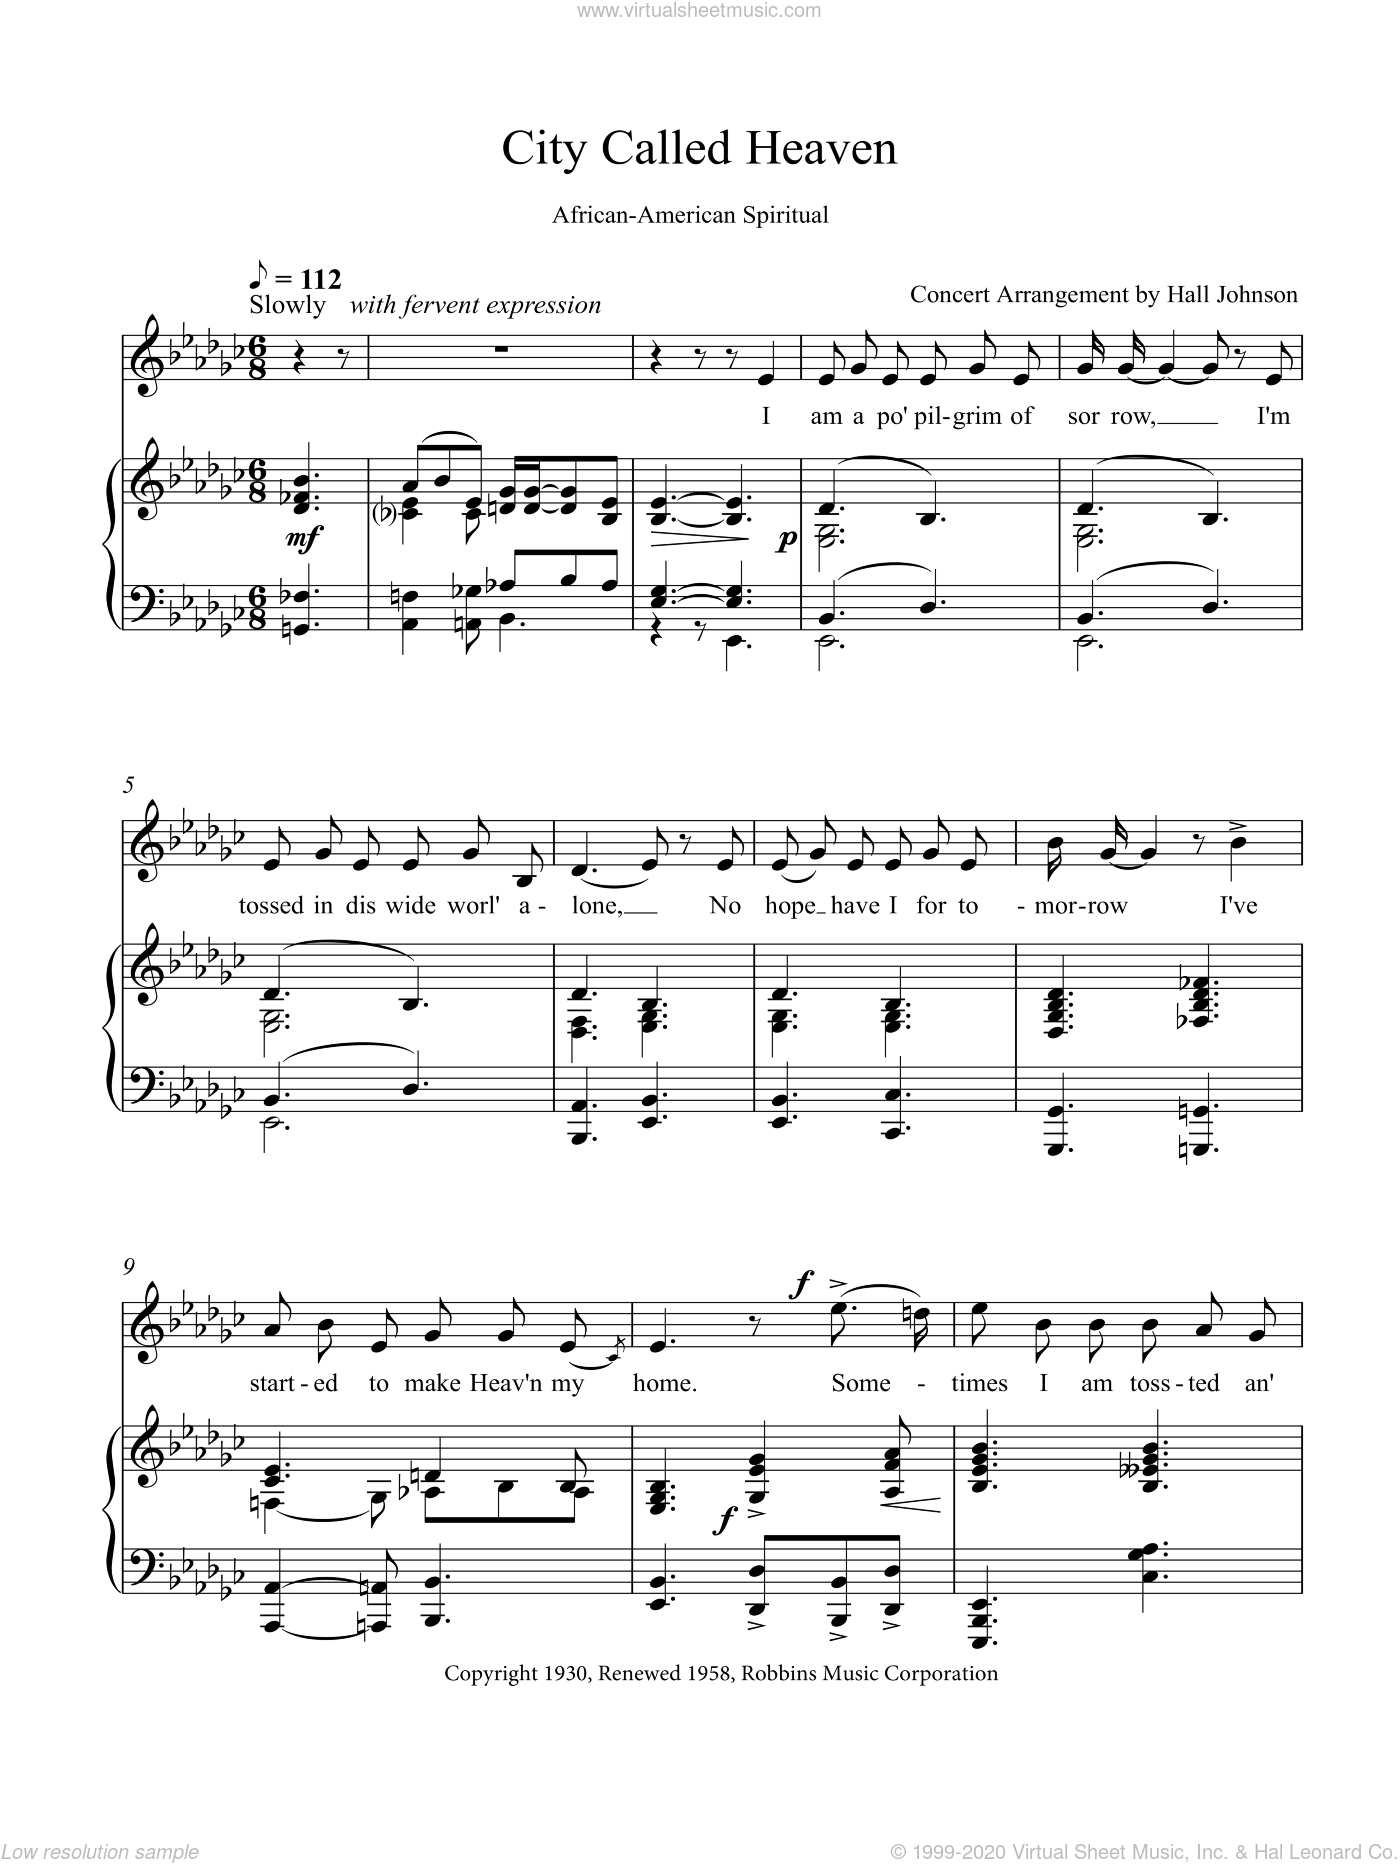 City Called Heaven (E-flat minor) sheet music for voice and piano by Hall Johnson, classical score, intermediate skill level